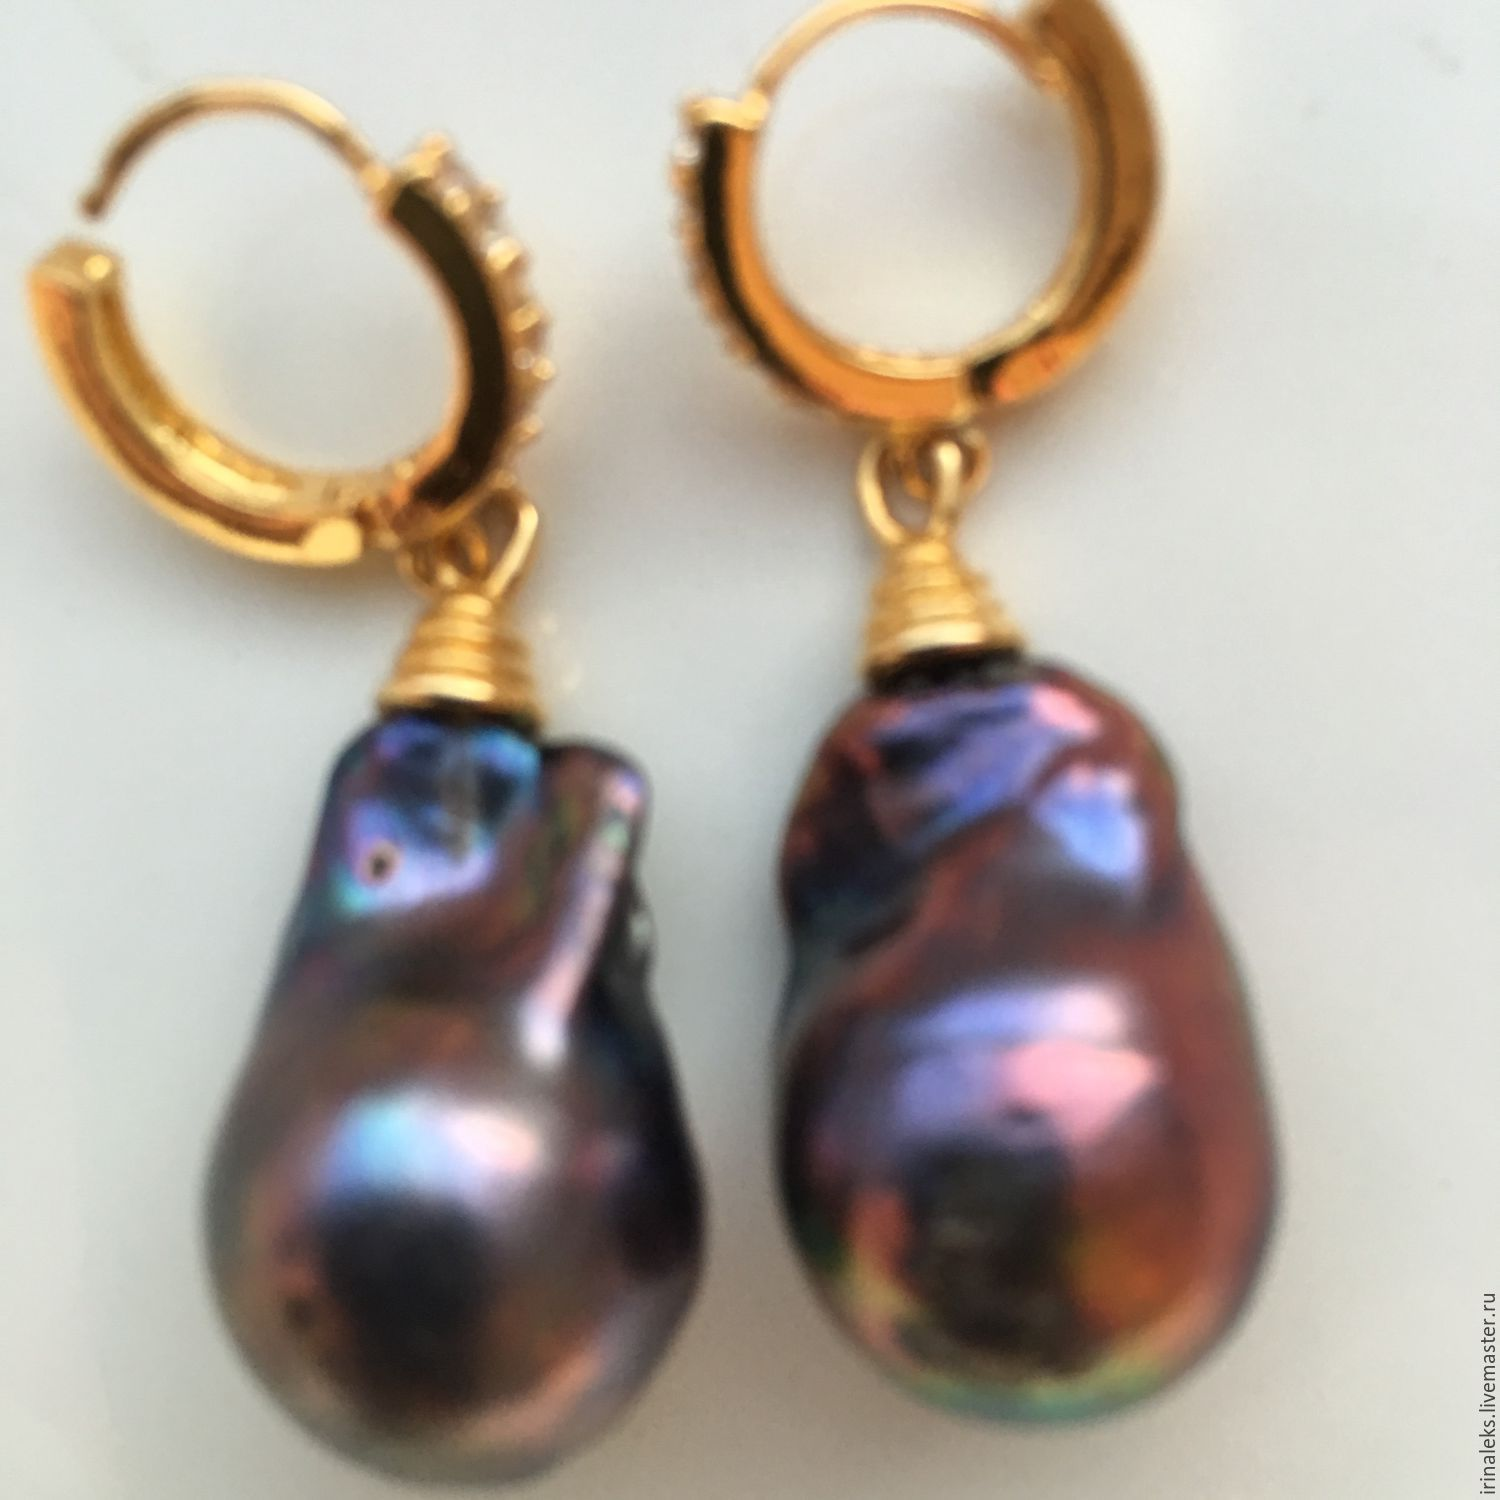 Earrings 'Violet', Earrings, Nizhny Novgorod,  Фото №1